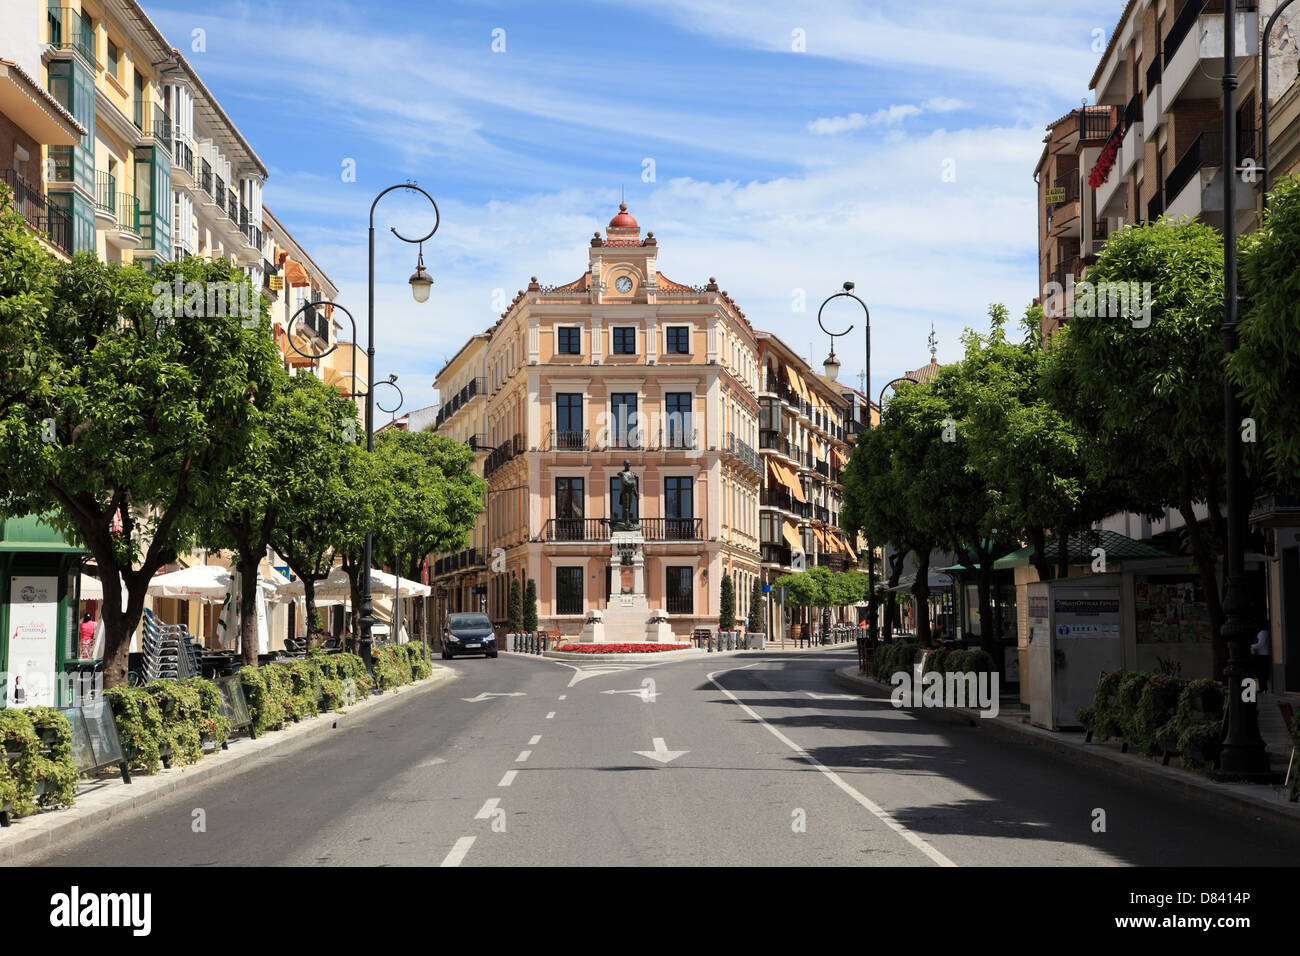 Street in Andalusian town Antequera, Spain - Stock Image